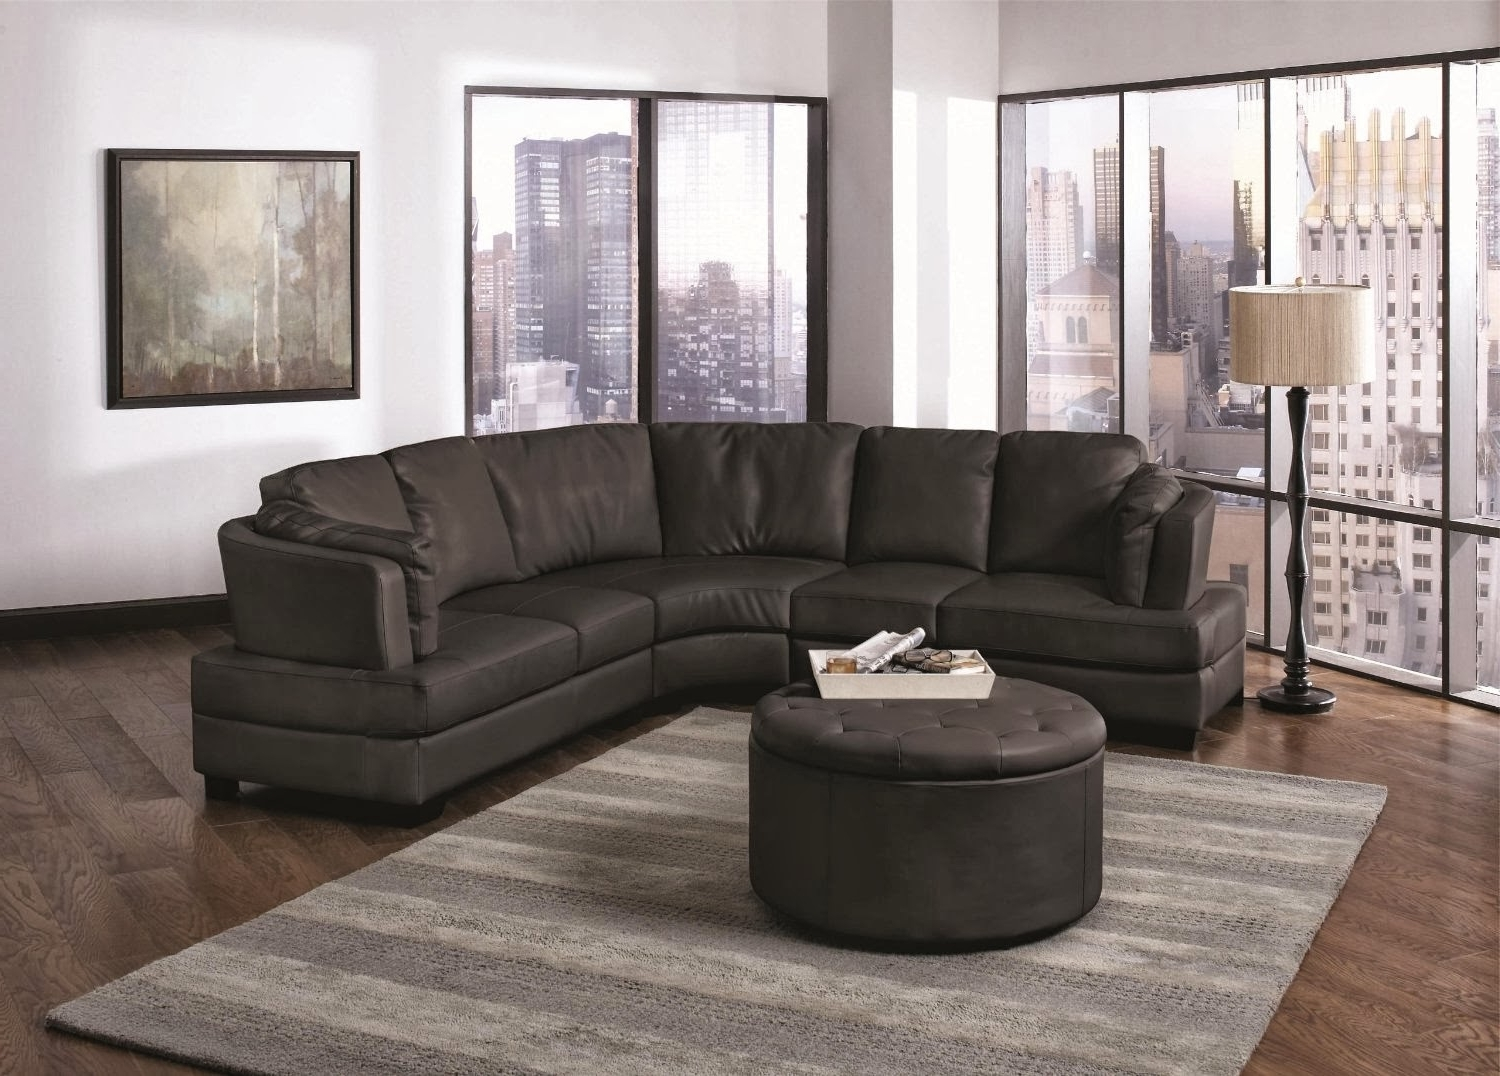 Recent Round Sectional Sofas In Ideas For Decorate With A Curved Sectional Sofa — Cabinets, Beds (View 11 of 20)